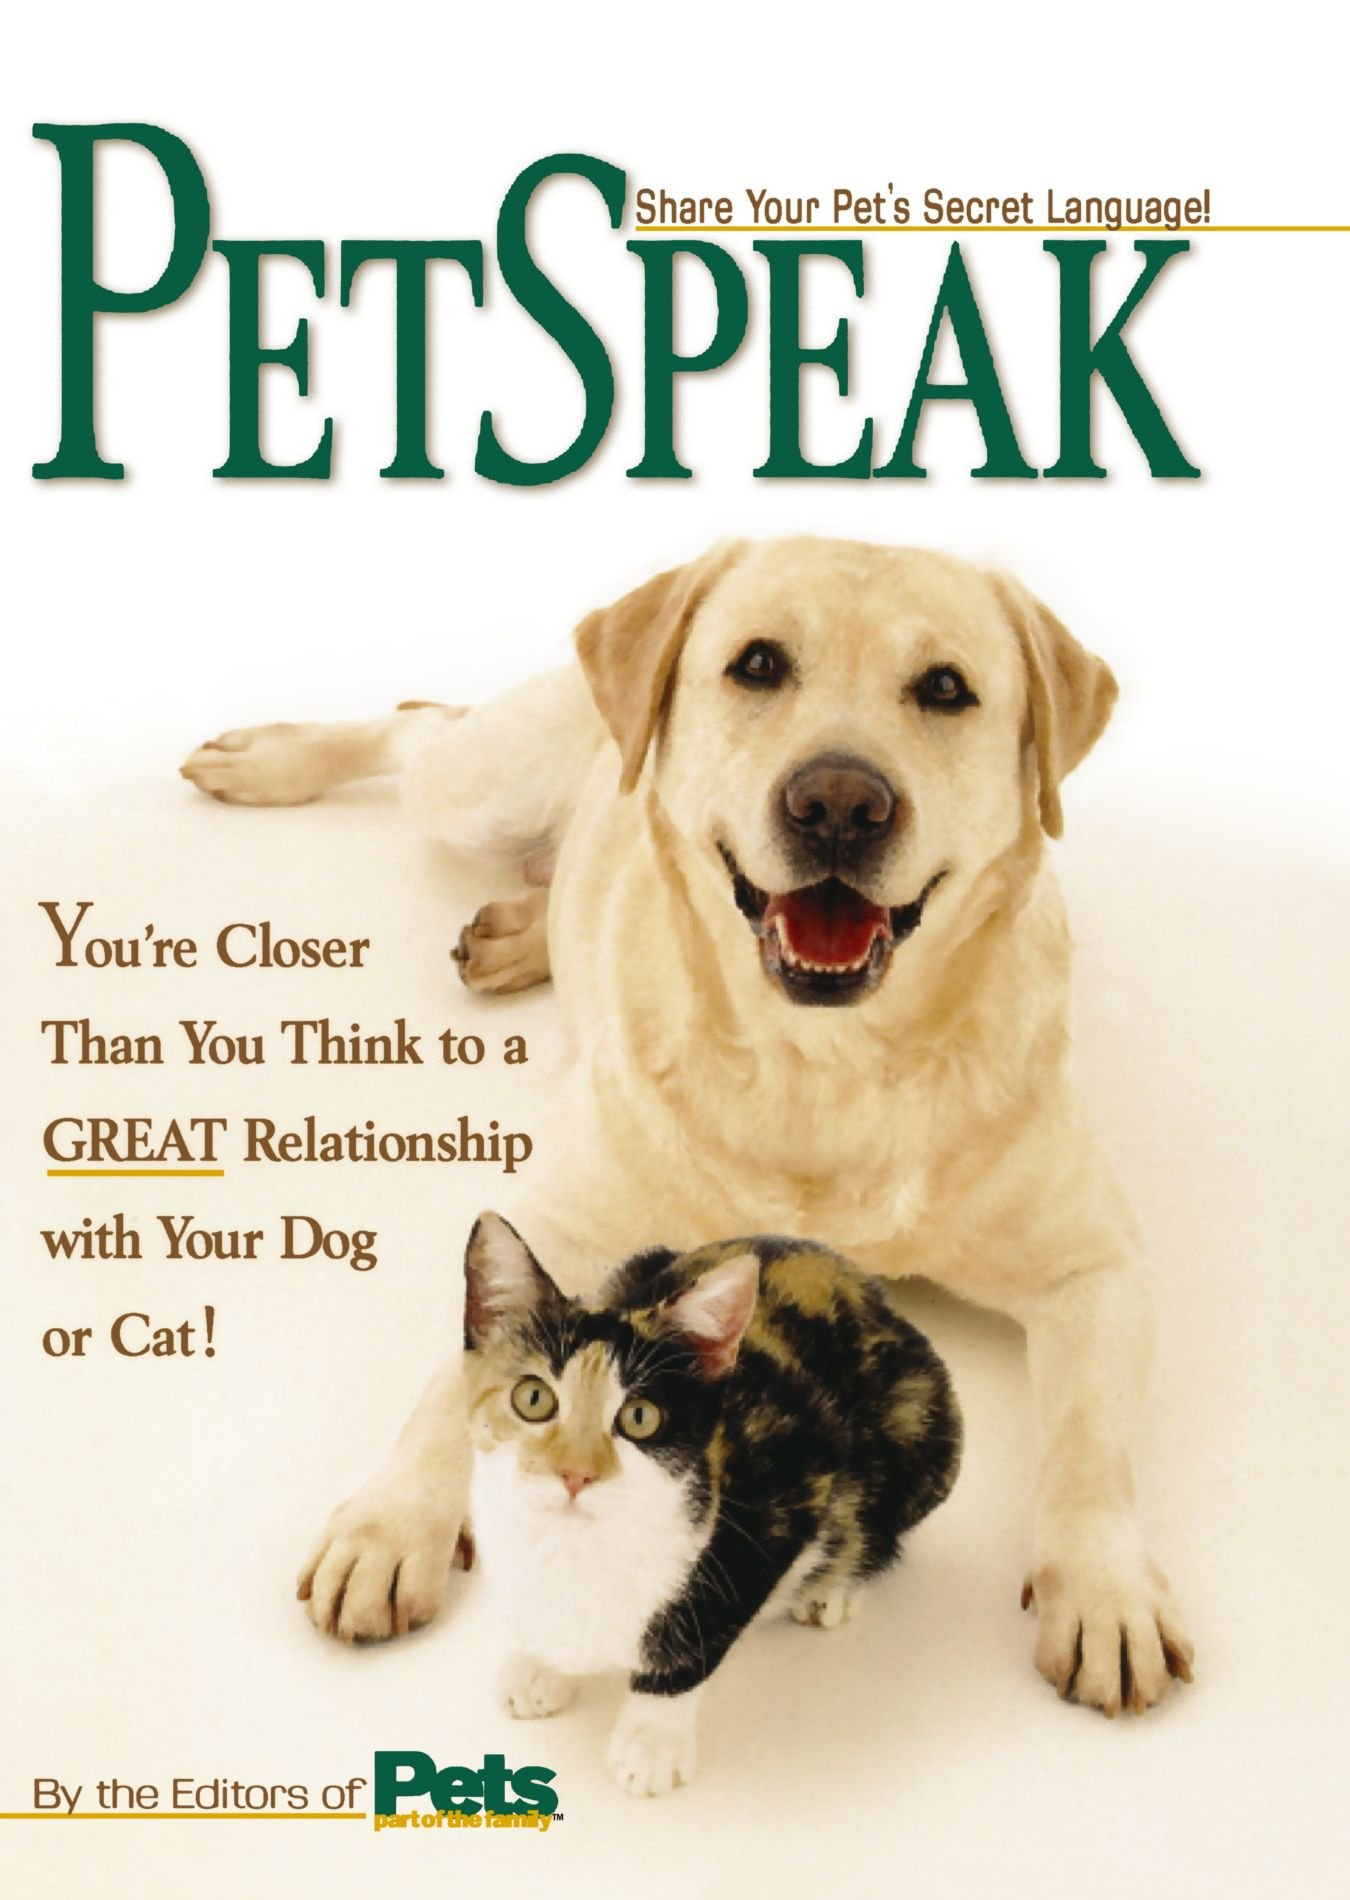 PetSpeak: Share Your Pet's Secret Language! by Rodale Books